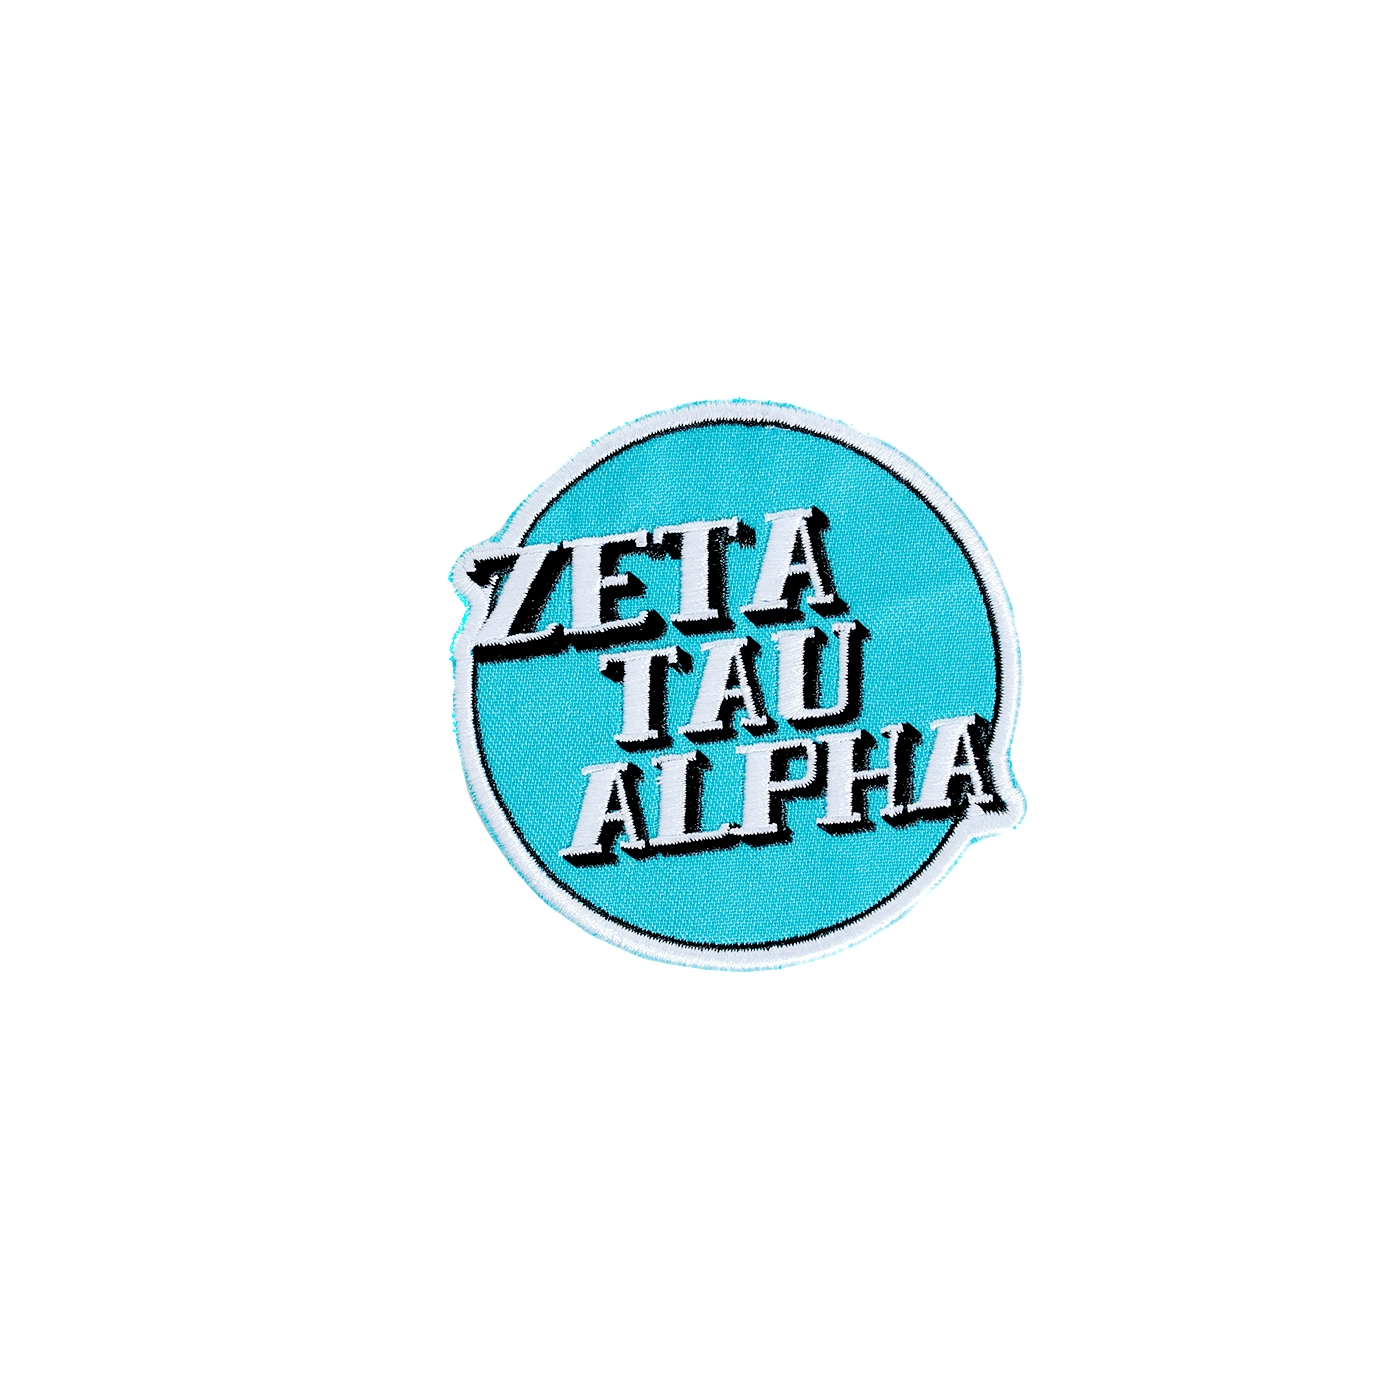 Zeta Tau Alpha Vintage Embroidered Patch